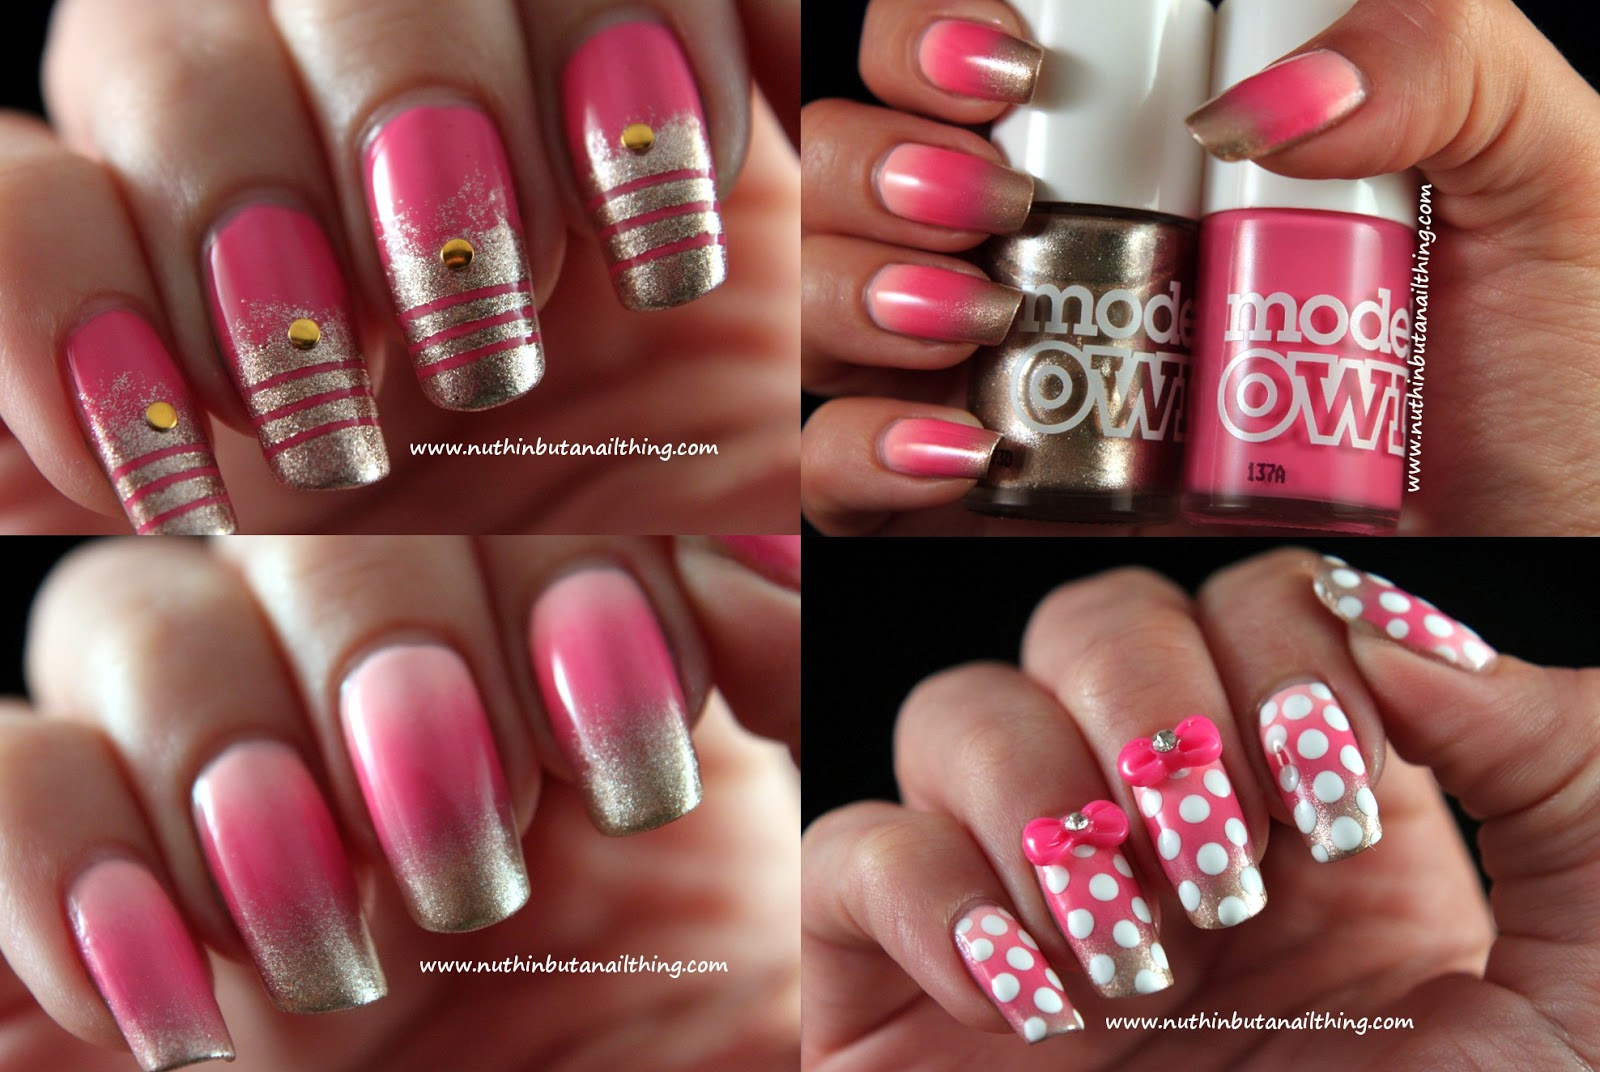 Nuthin But A Nail Thing Nail Art With Models Own Pink Blush And